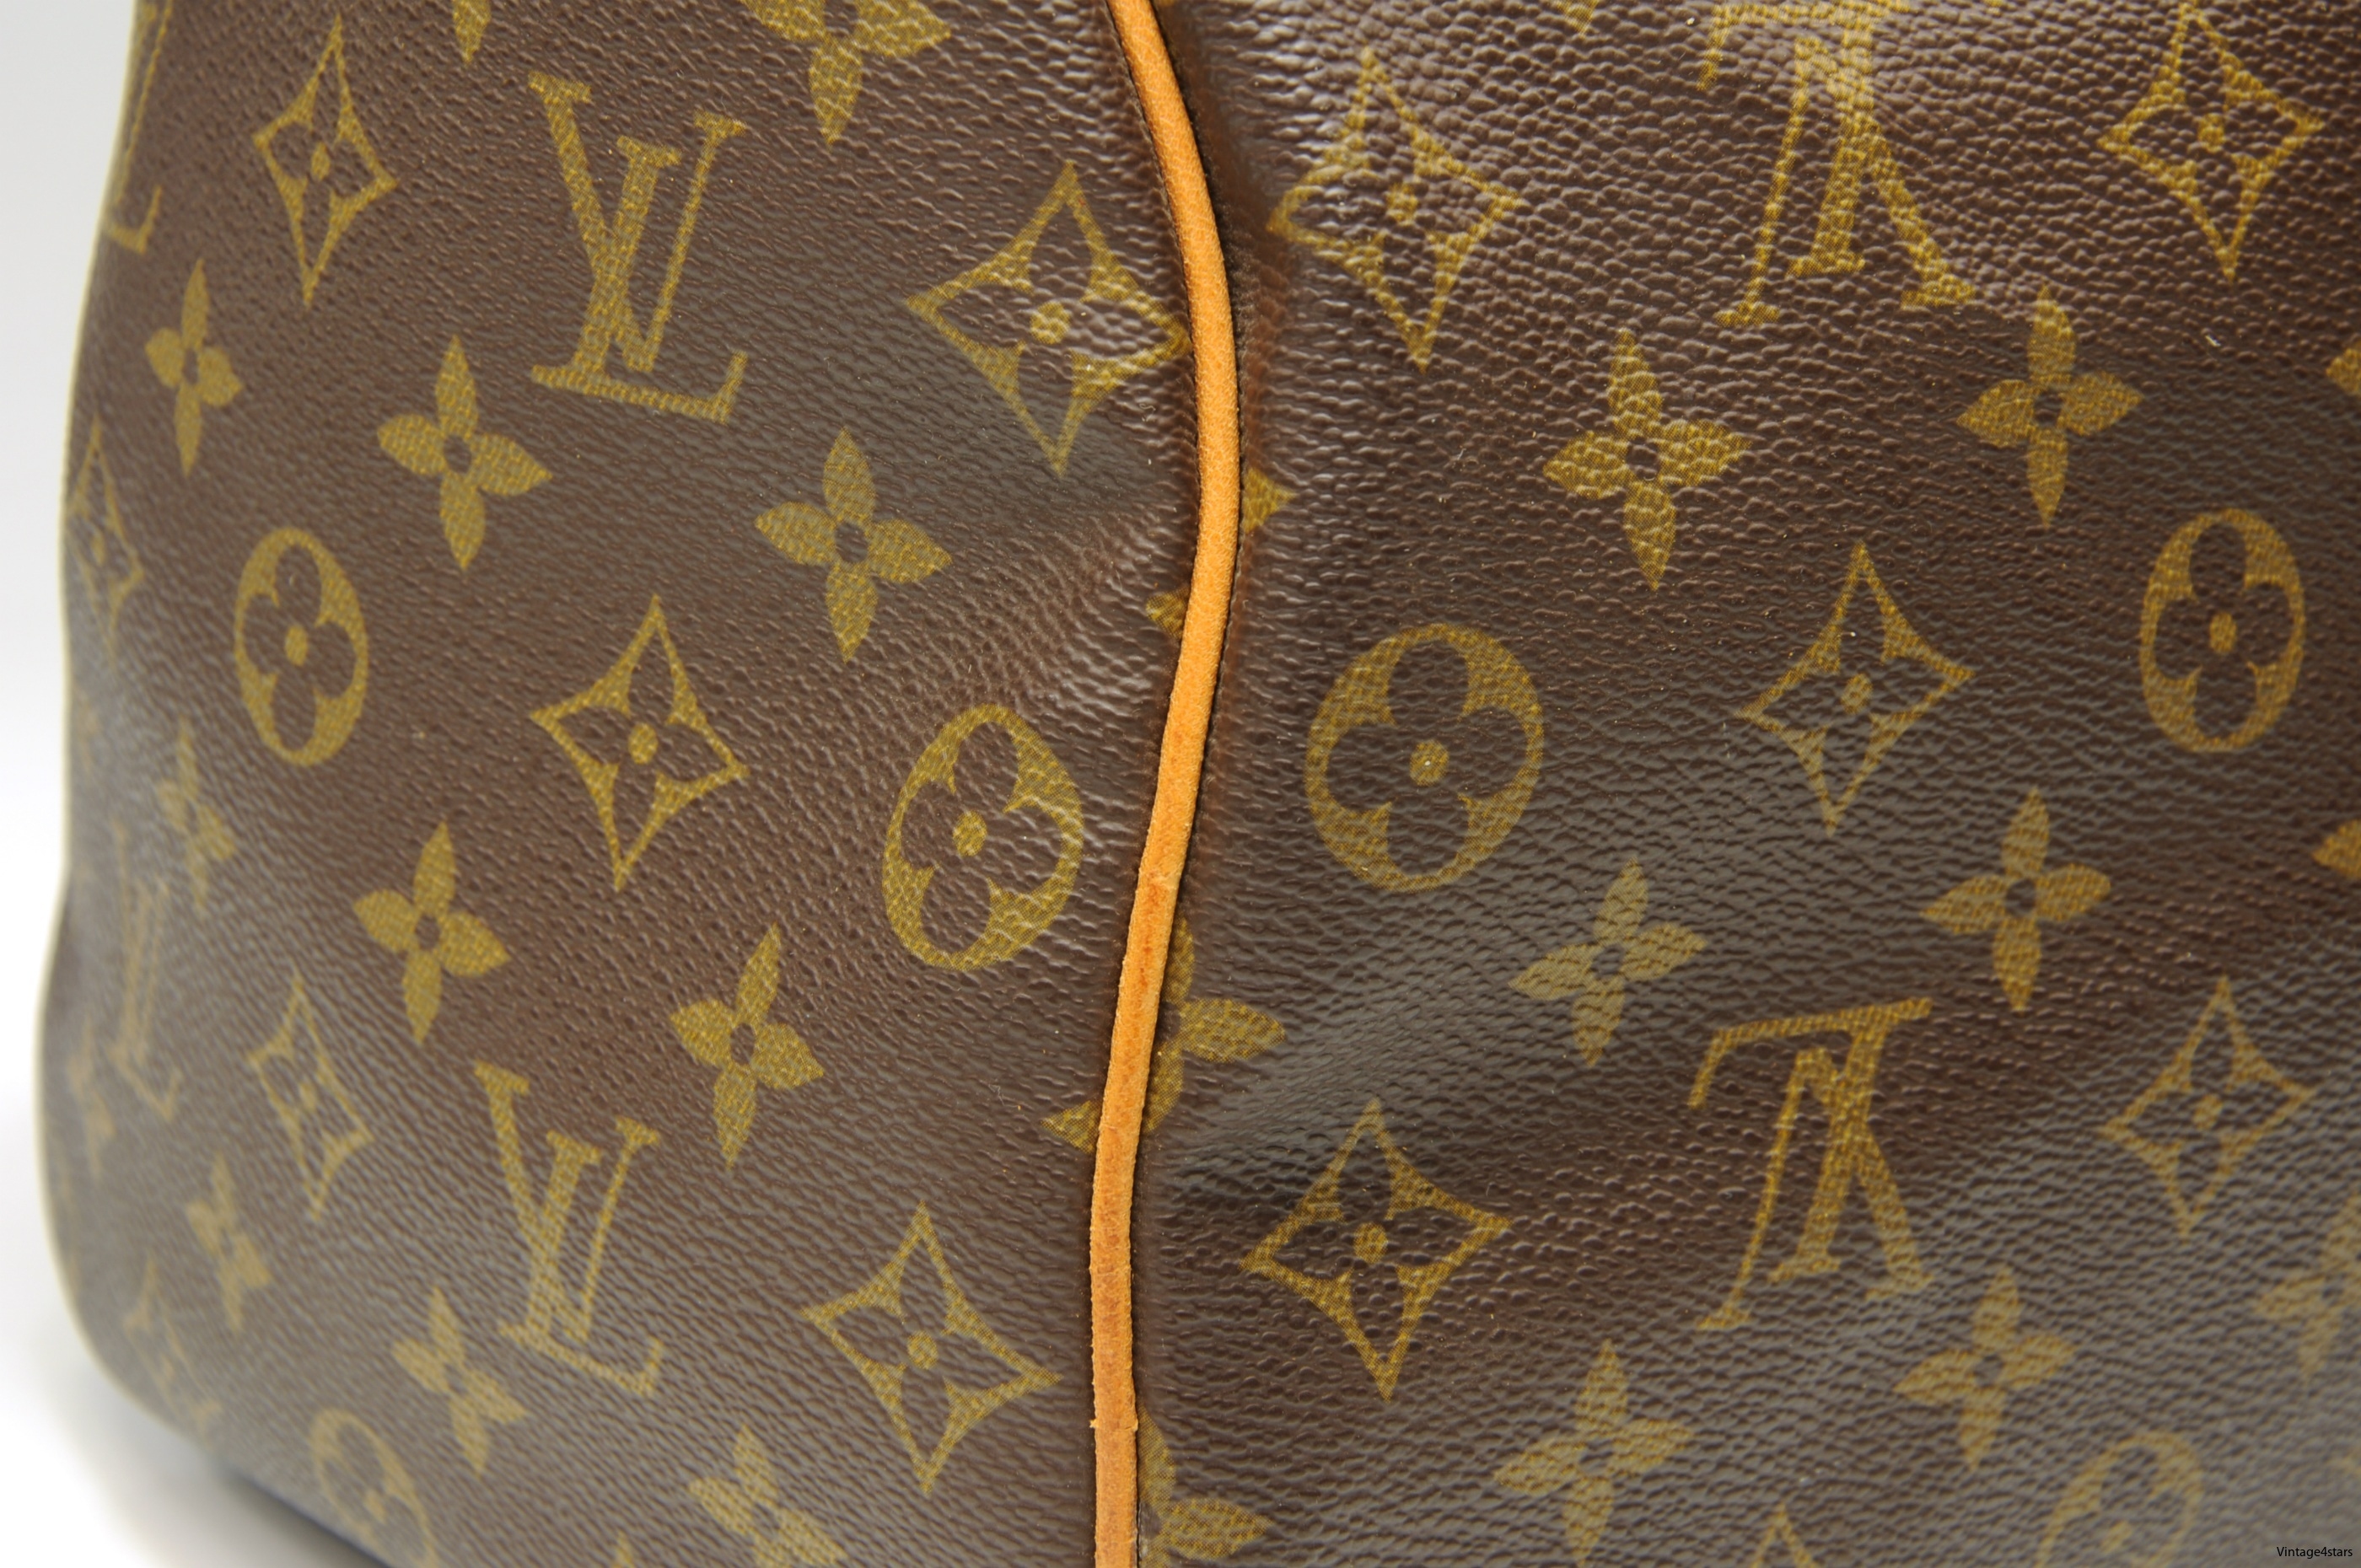 Louis Vuitton Speedy 35 Monogram 9